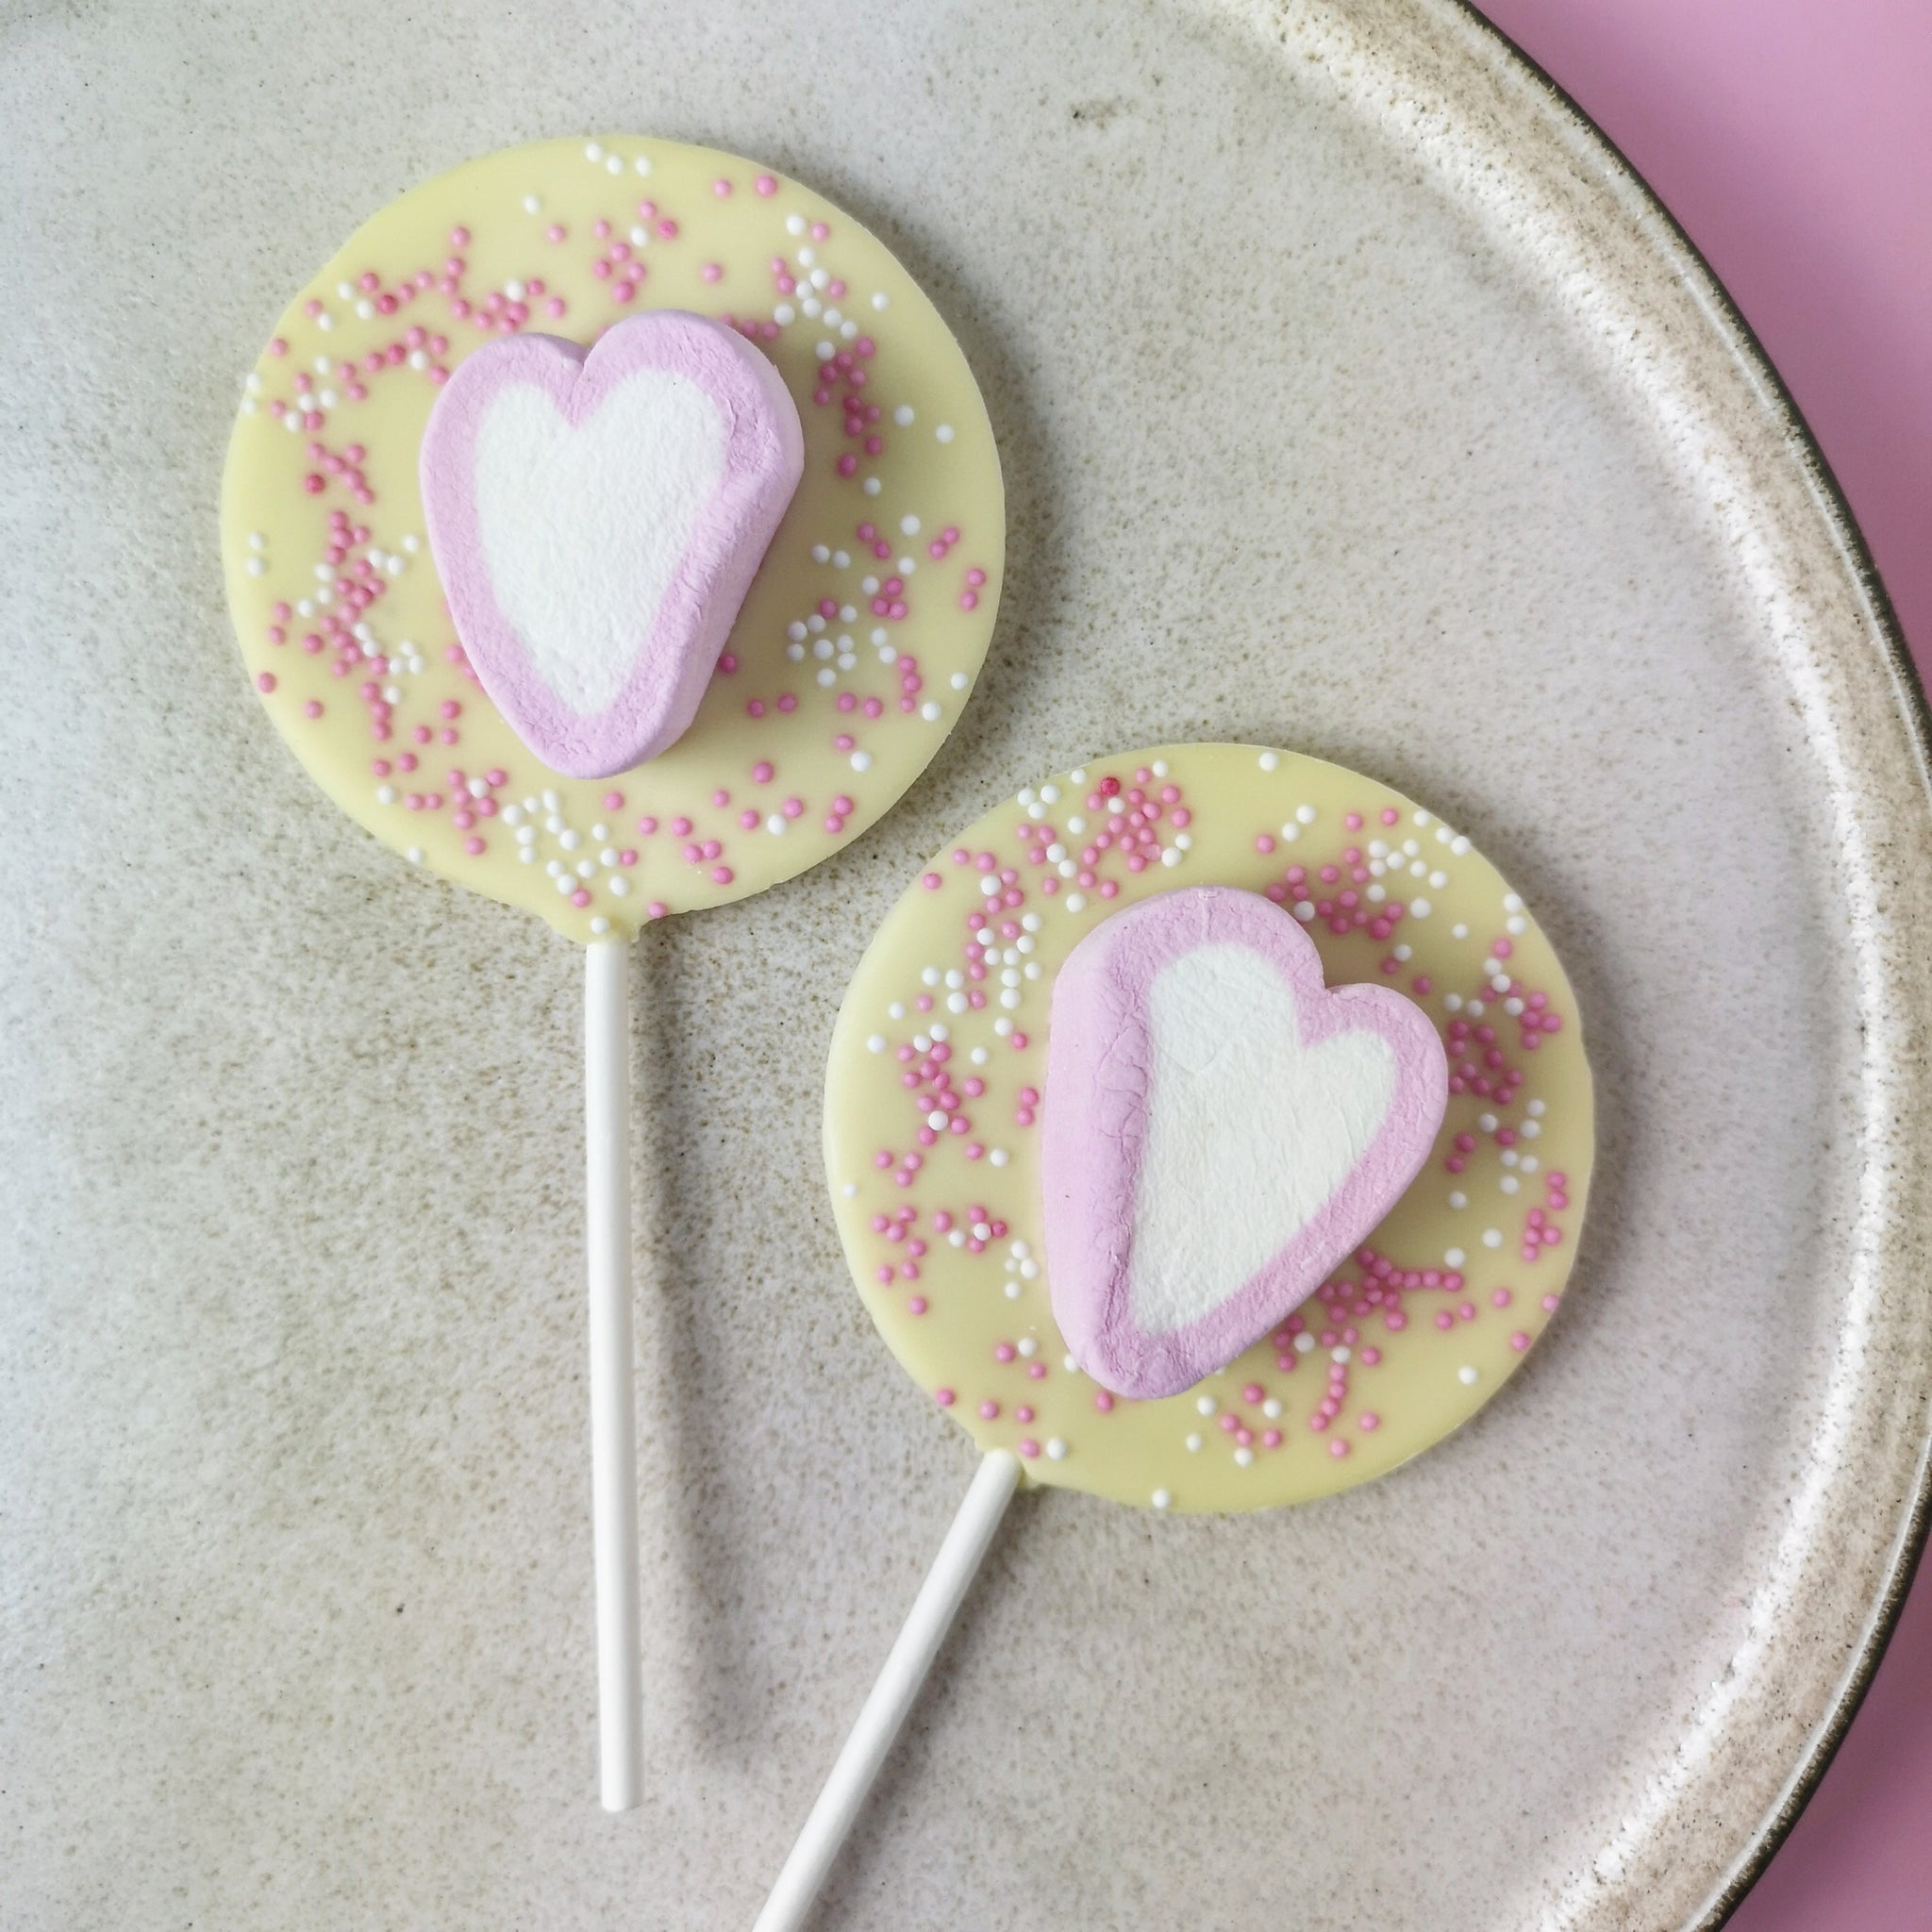 Heart Marshmallow Lollipops